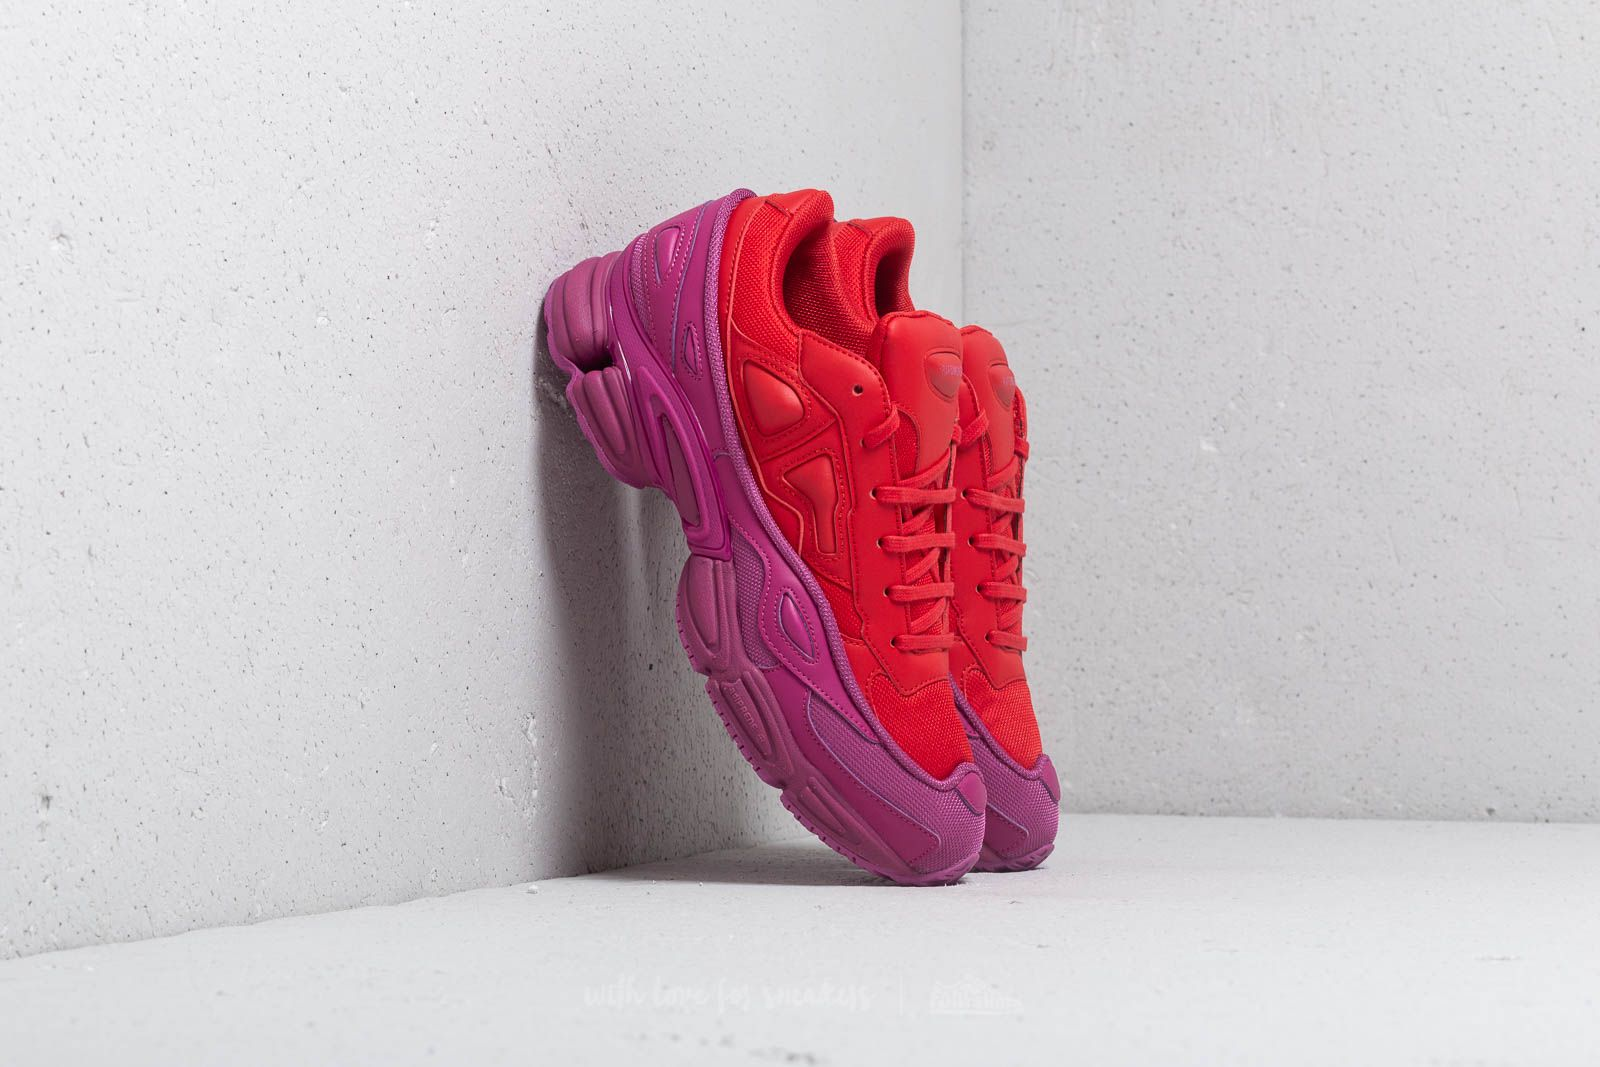 64a85bf99 adidas x Raf Simons Ozweego Glory/ Collegiate Red/ Collegiate Red at a  great price